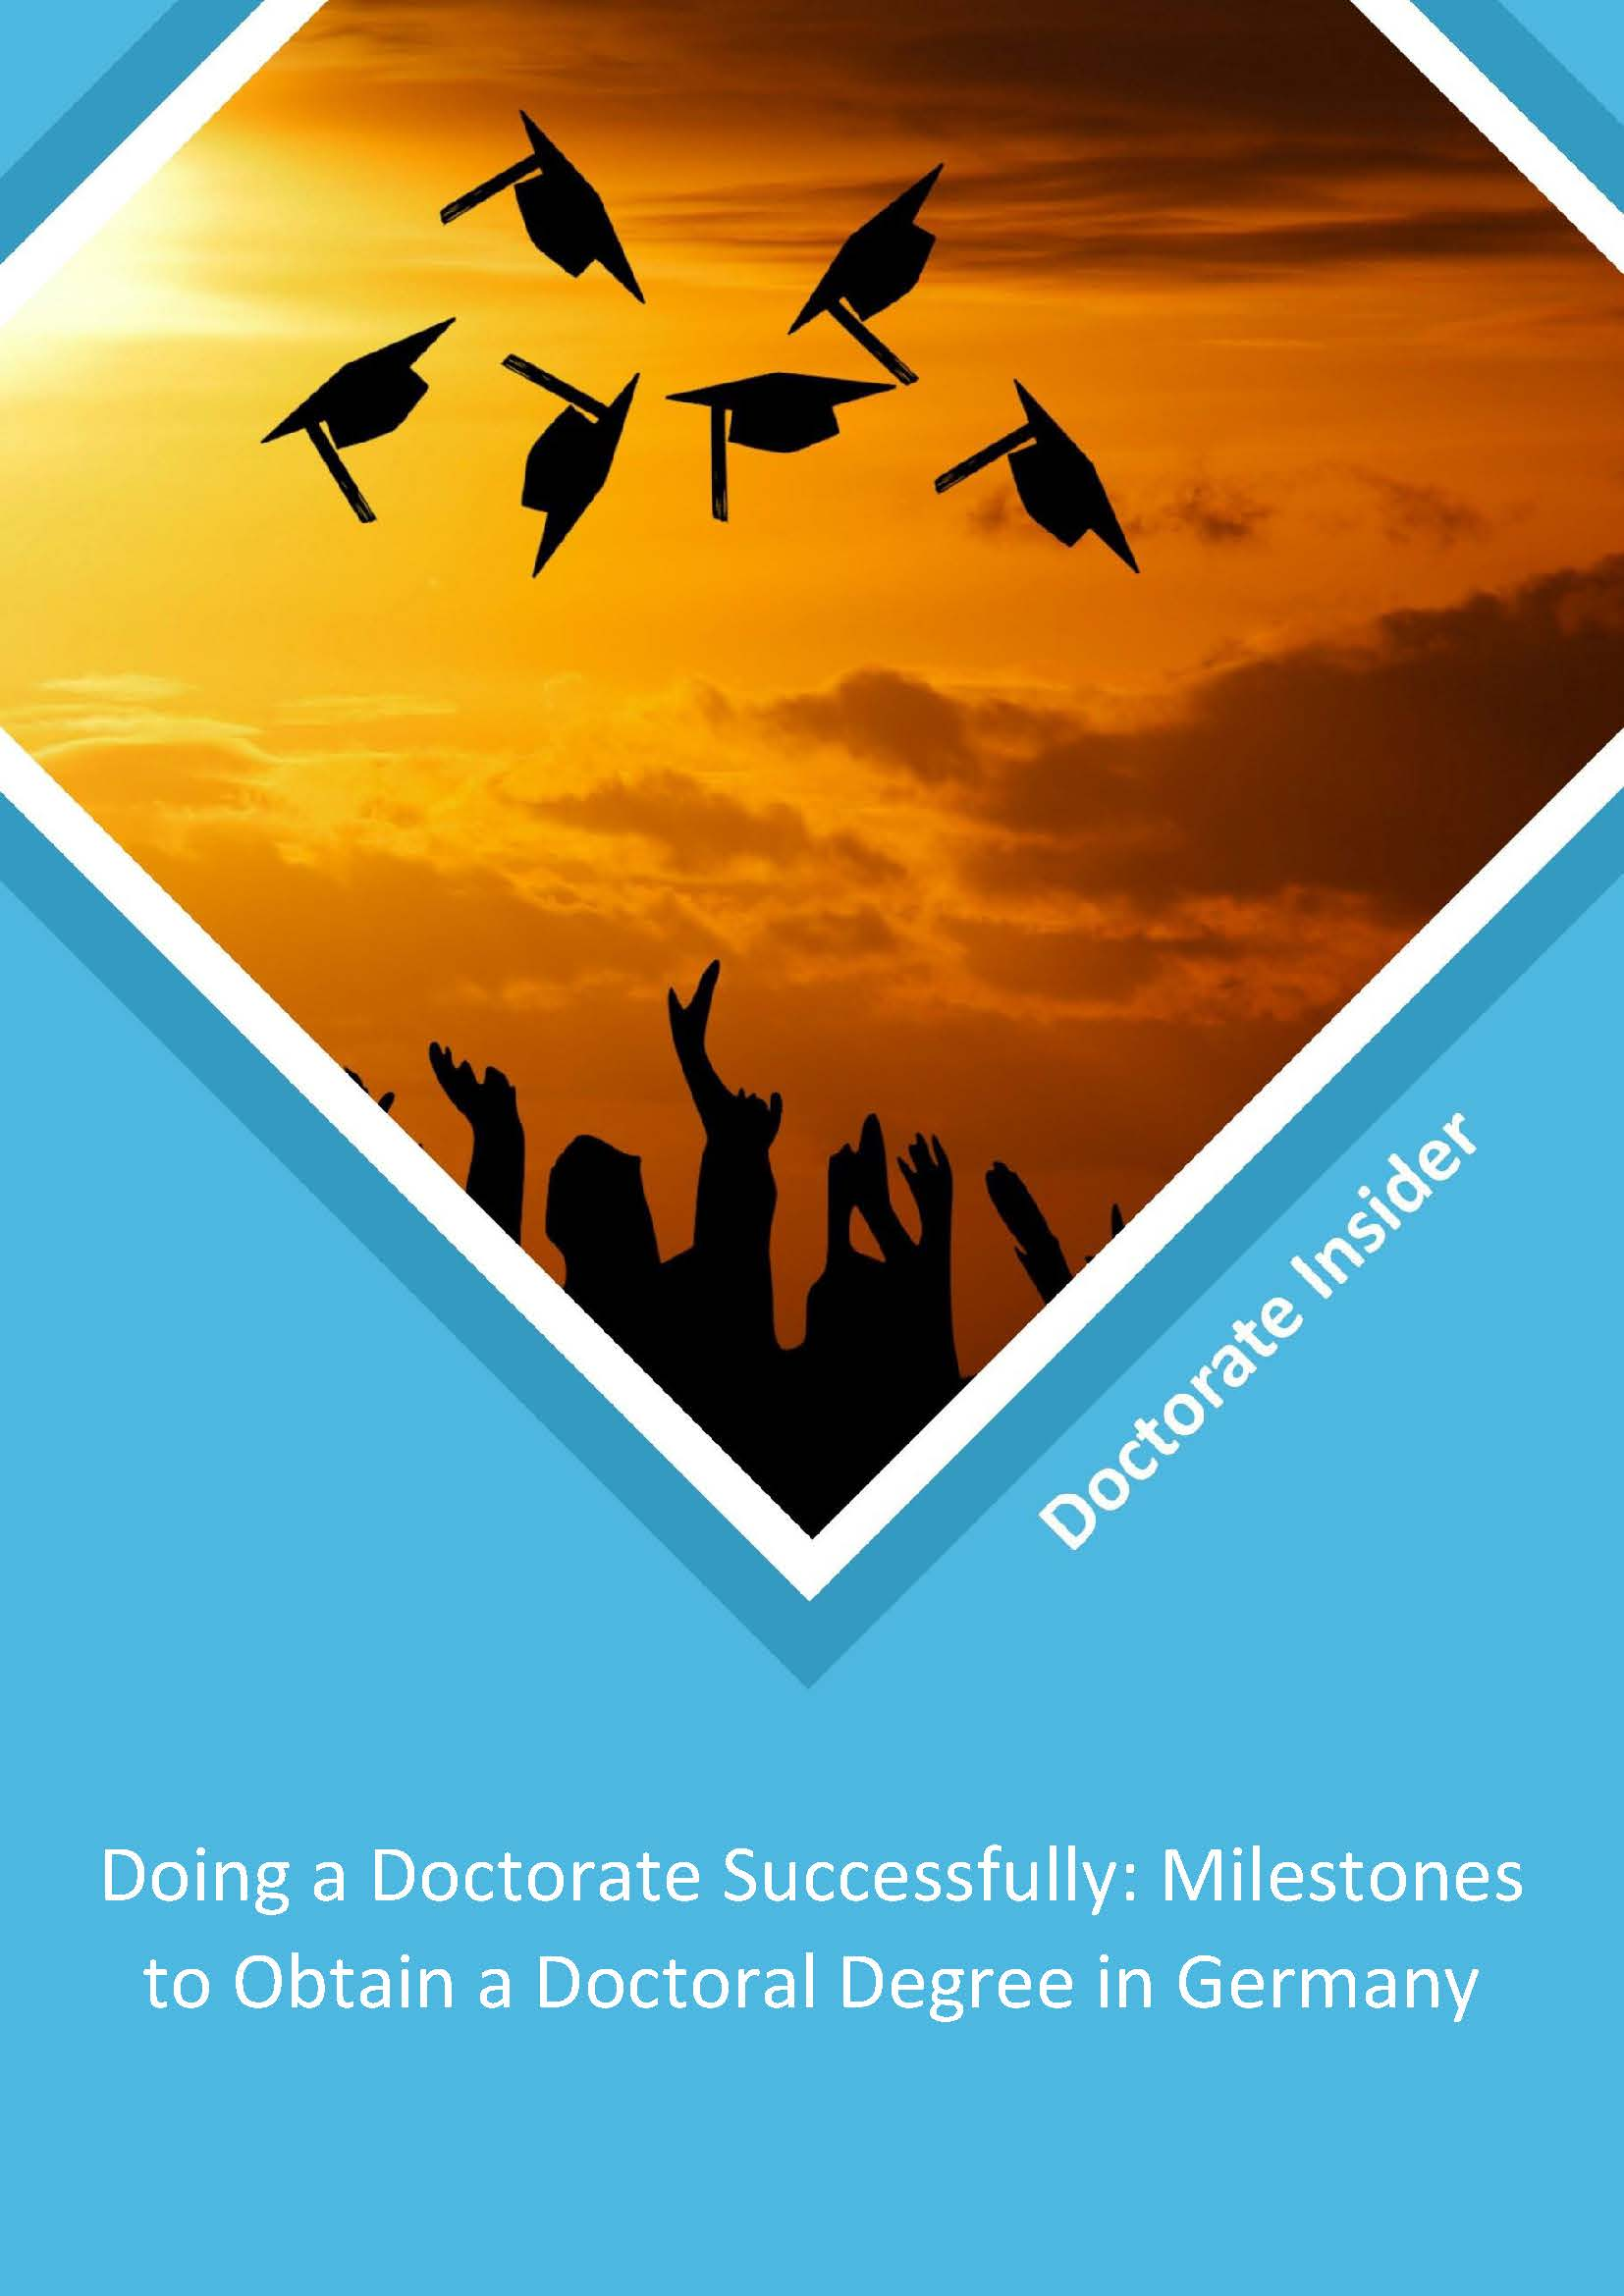 DOING A DOCTORATE SUCCESSFULLY: MILESTONES TO OBTAIN A DOCTORAL DEGREE IN GERMANY